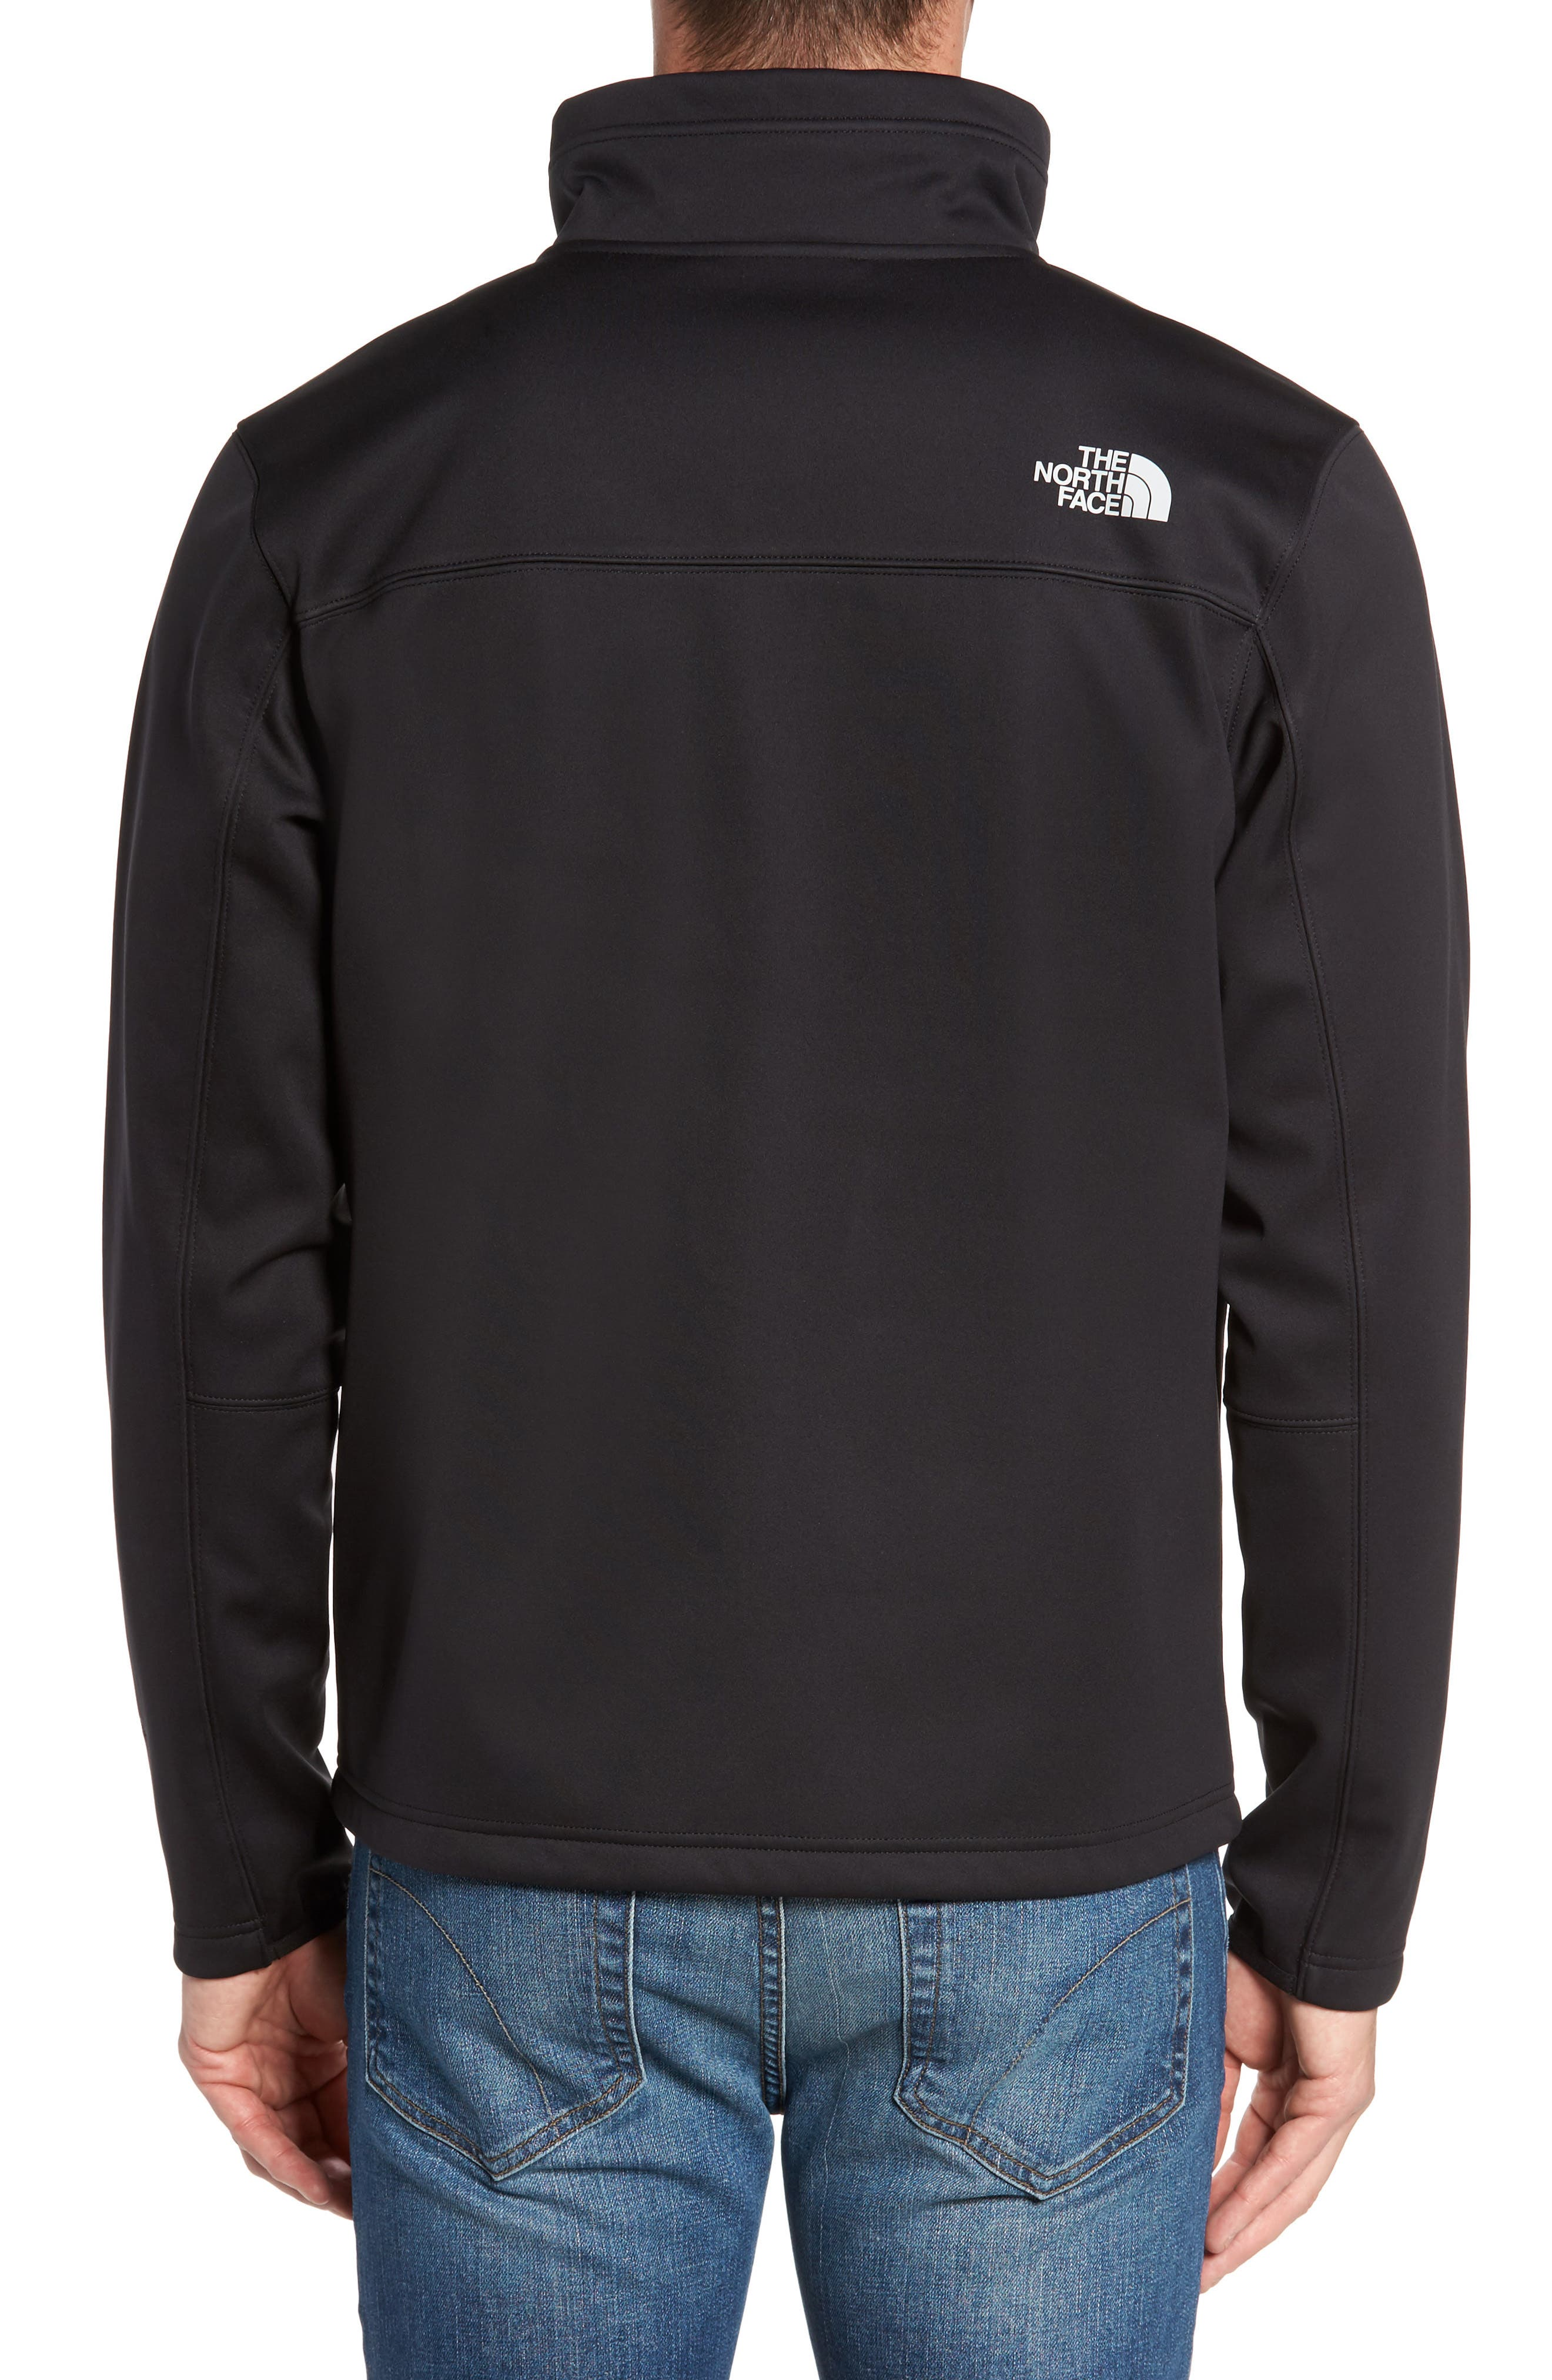 Apex Risor Jacket,                             Alternate thumbnail 2, color,                             Black/ Black